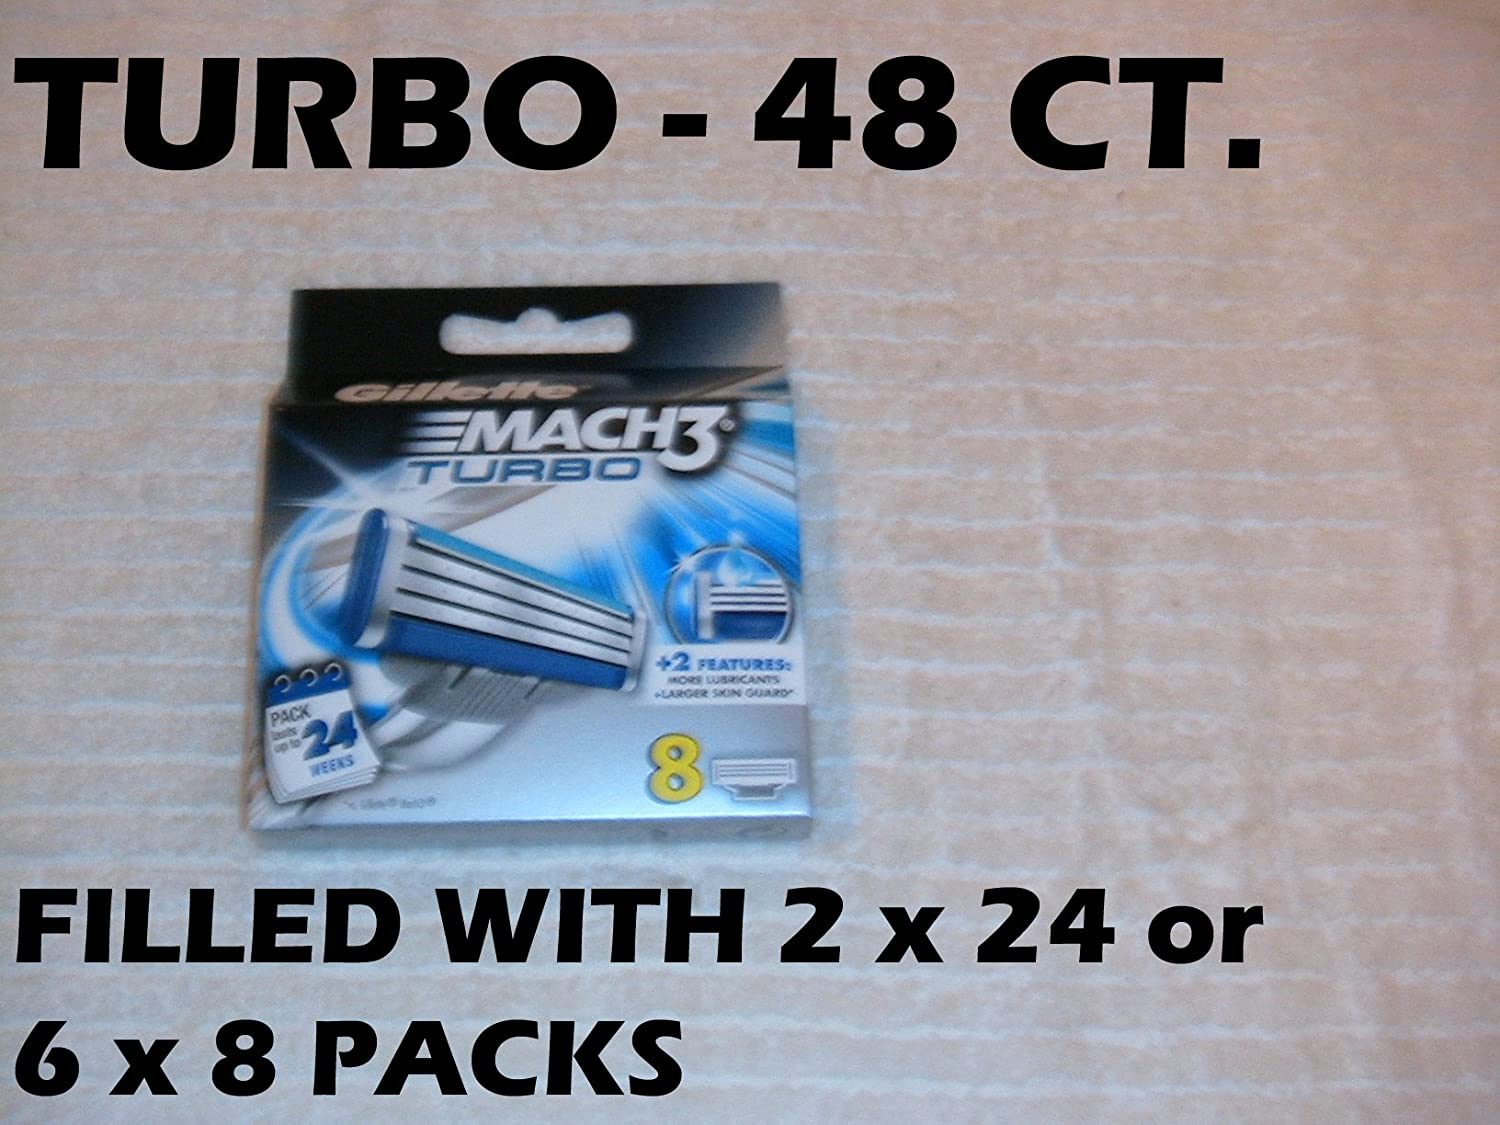 (Wholesale 2 Pack) Mach3 Turbo Refill Cartridge Blades, 24 Count (48 Total)